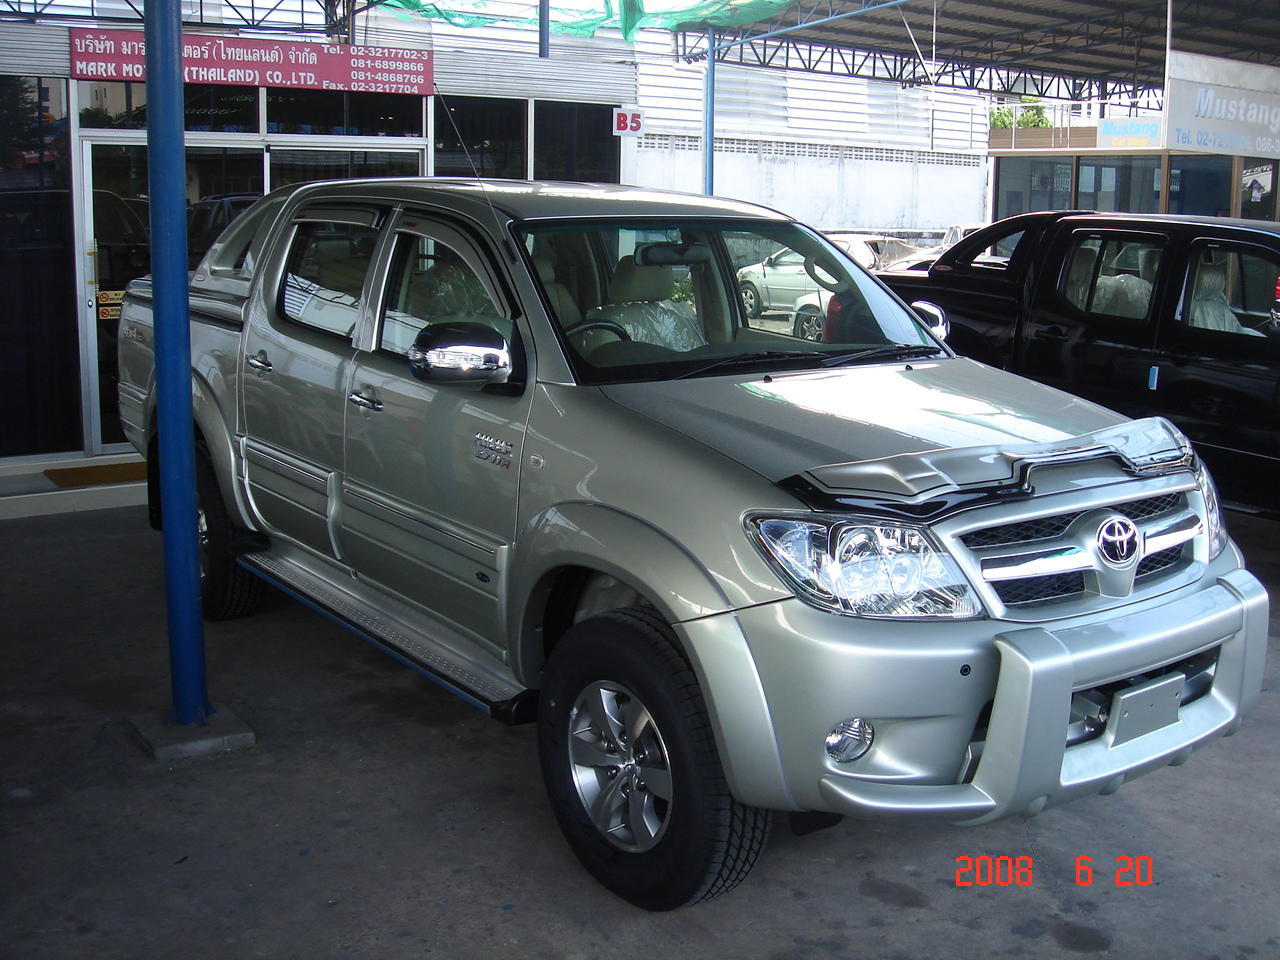 New 2014 Toyota Vigo Exporters Thailand Trusted Used | Auto Design